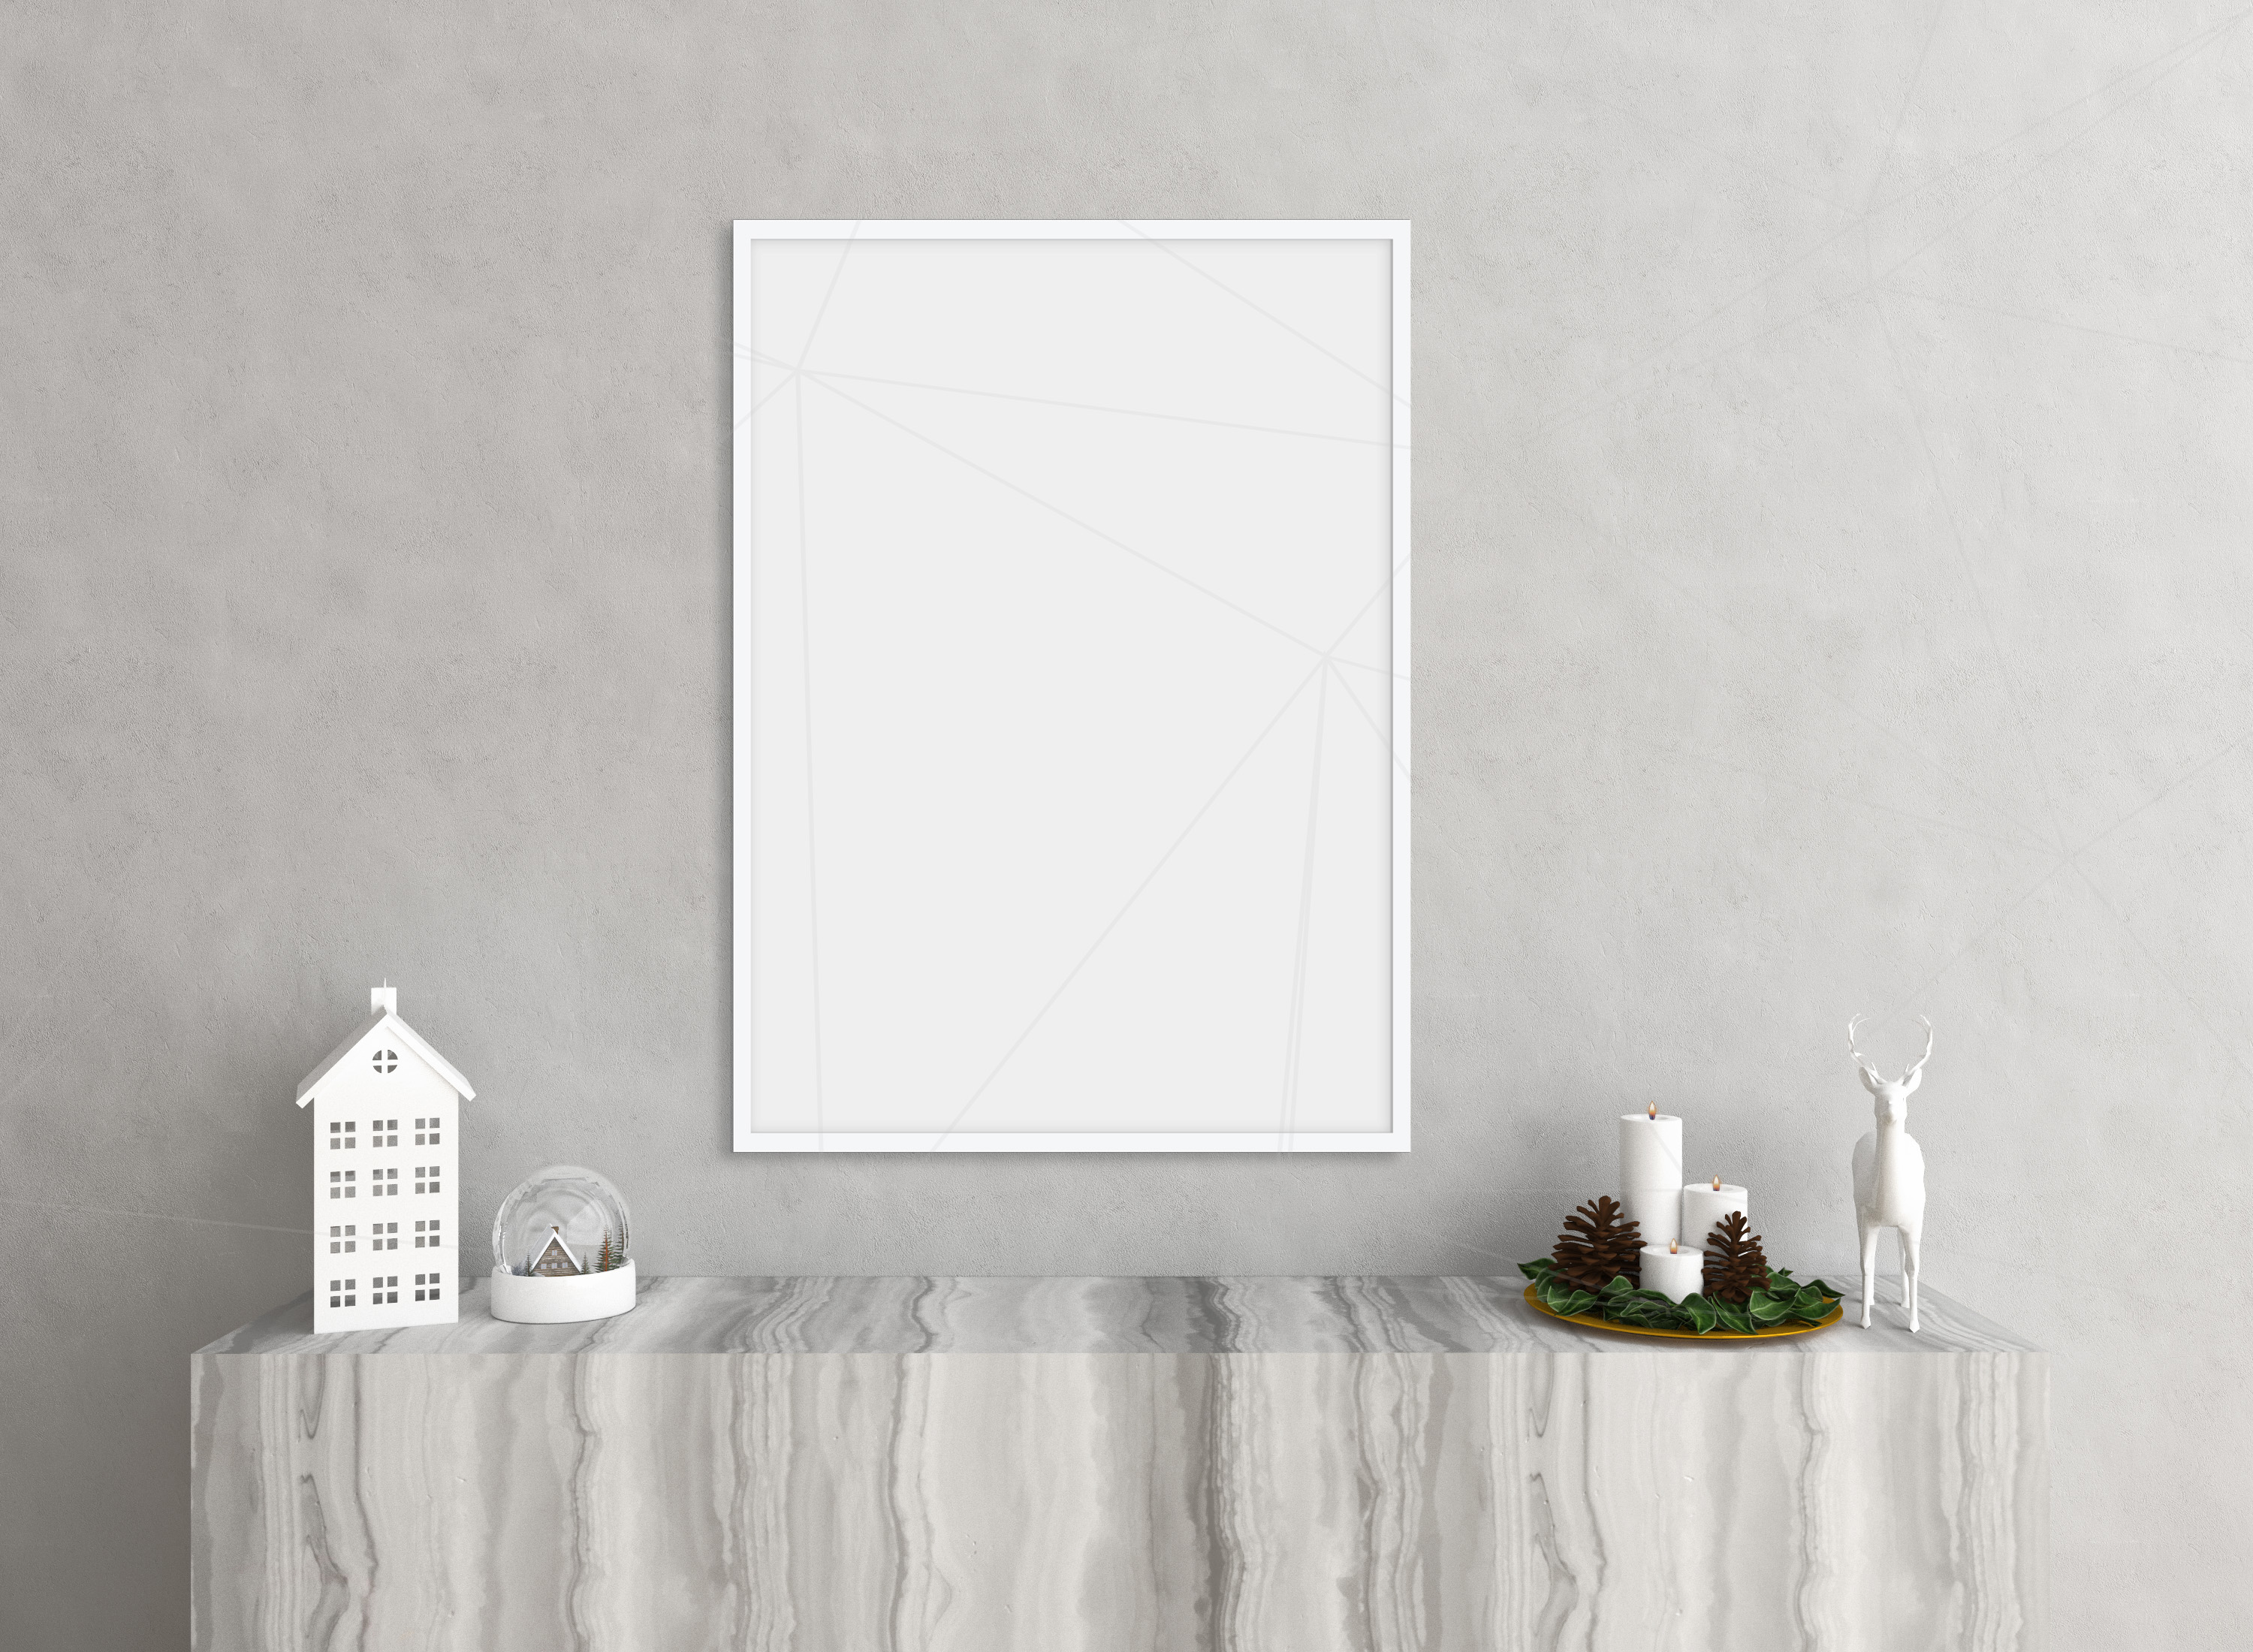 Christmas interior mockup bundle - blank wall mock up example image 1